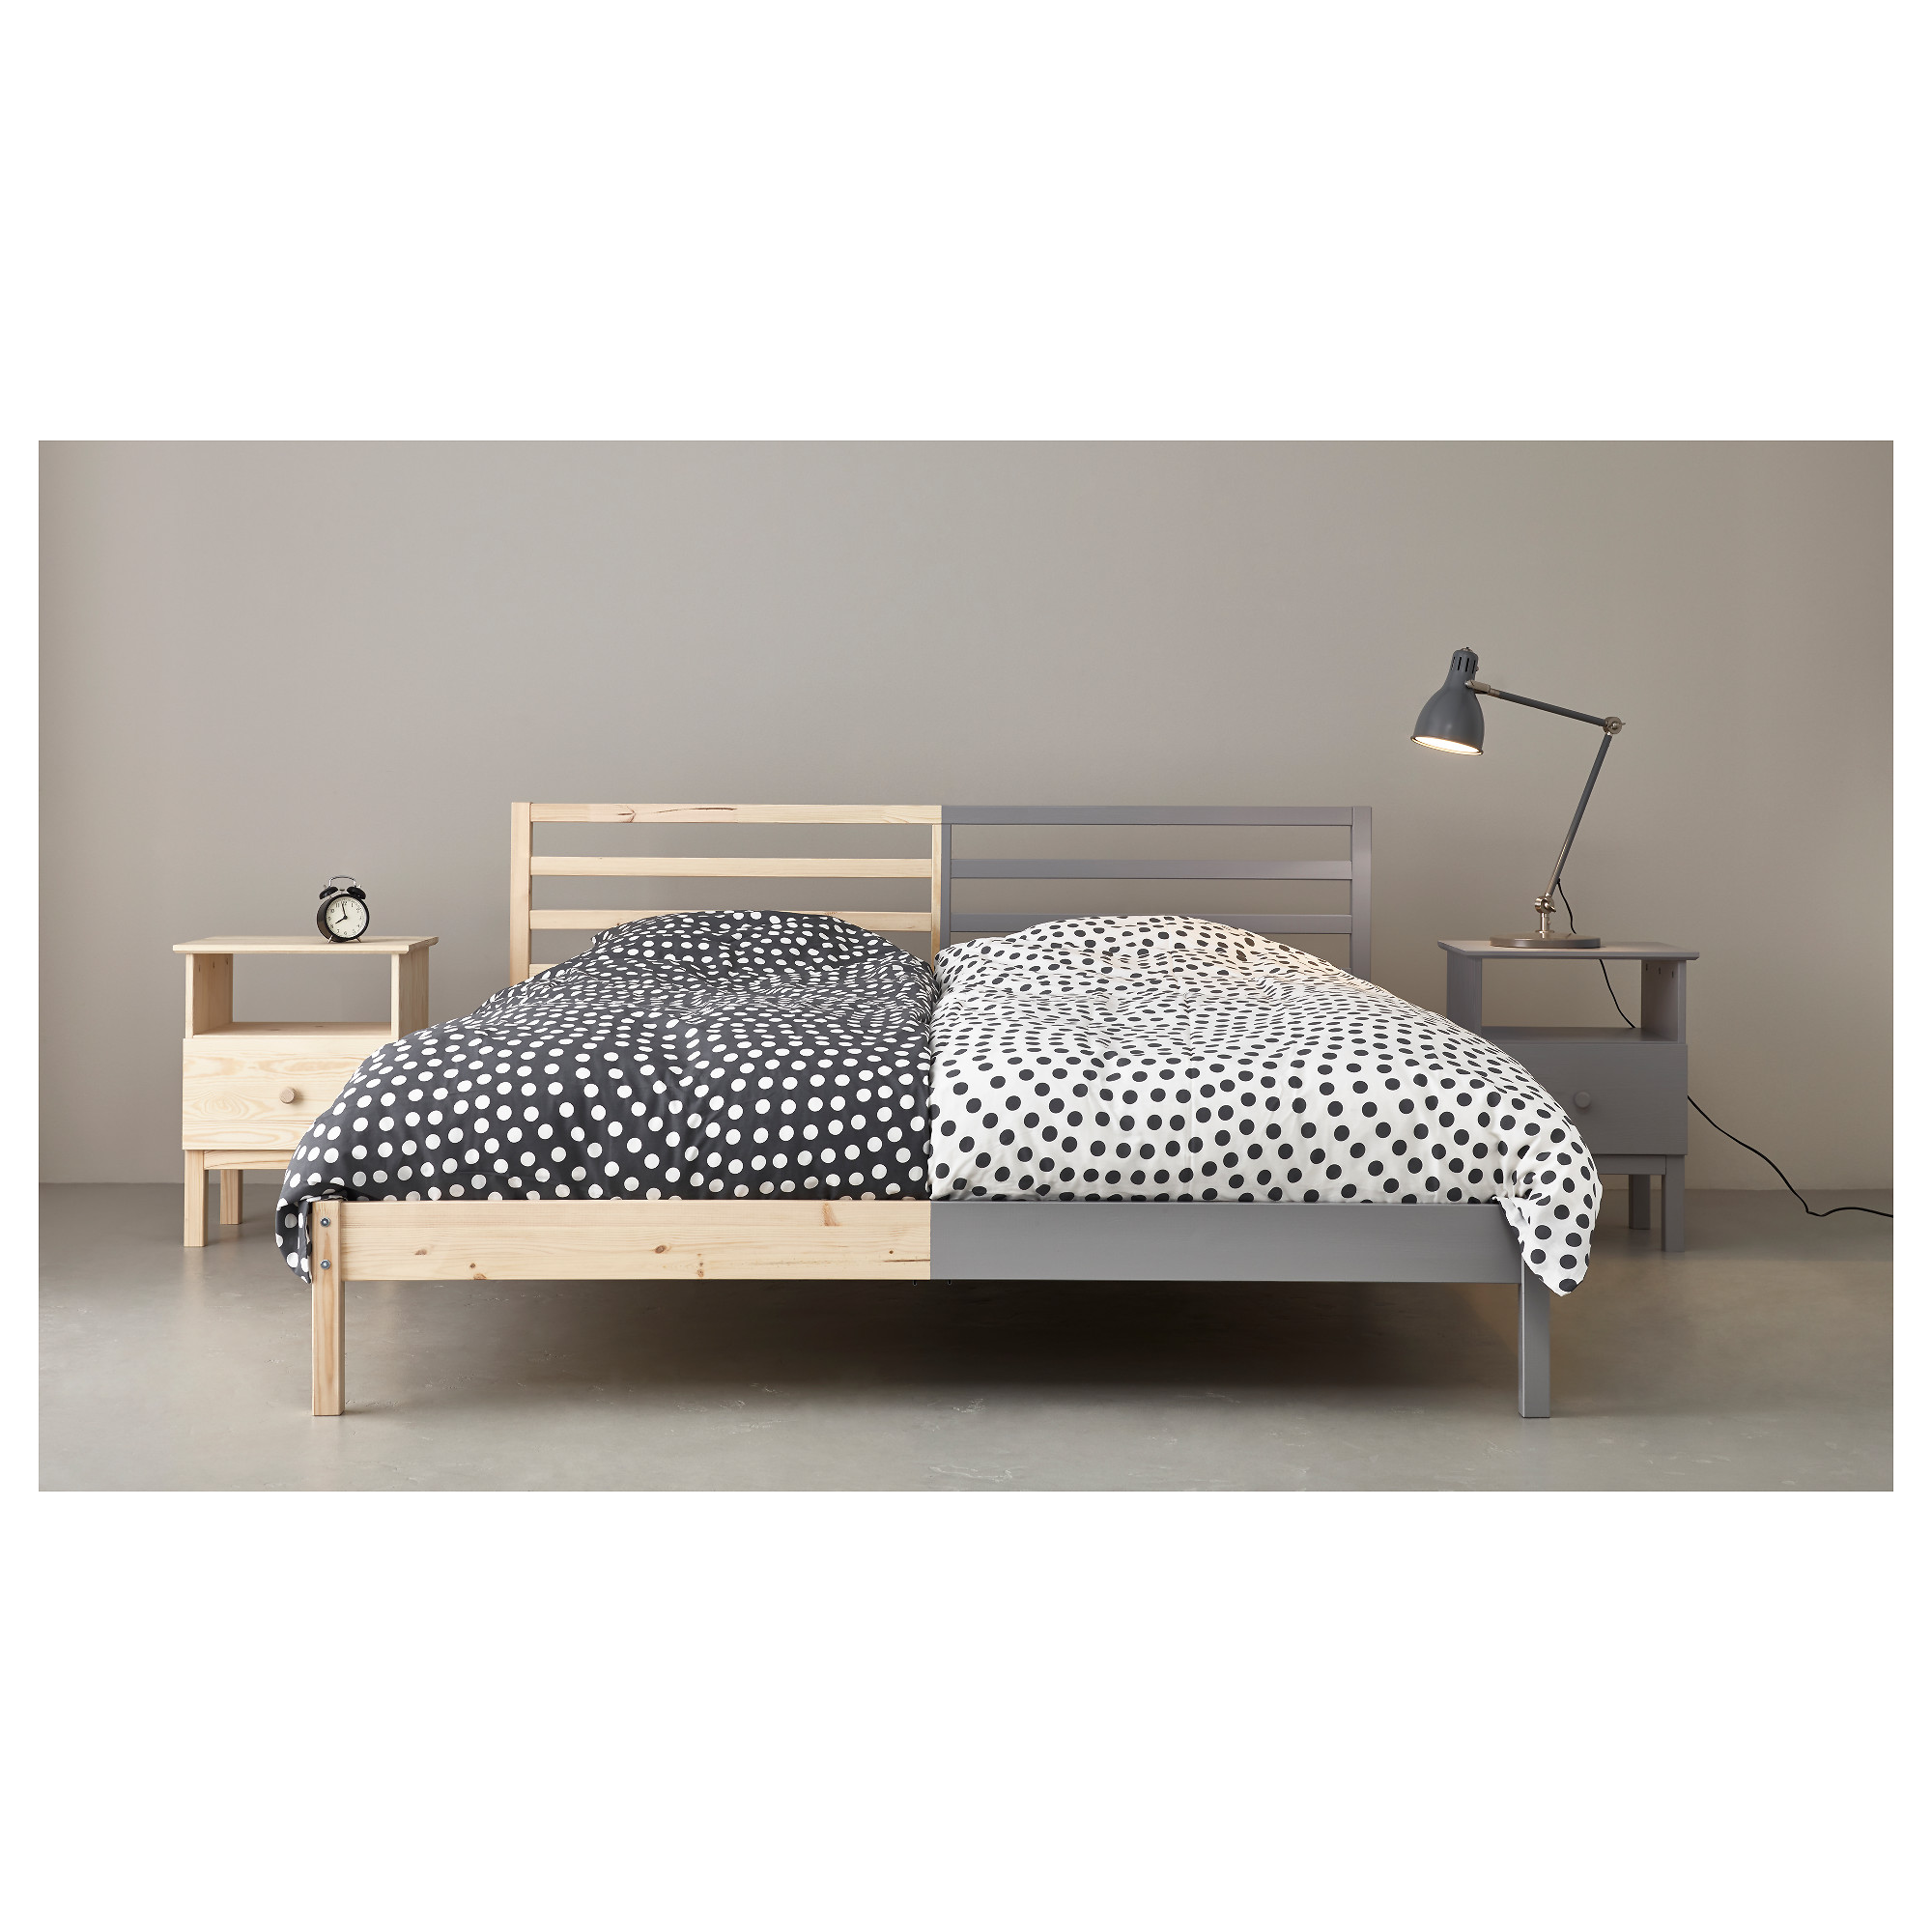 tarva bed frame queen ikea - Tarva Bed Frame Review